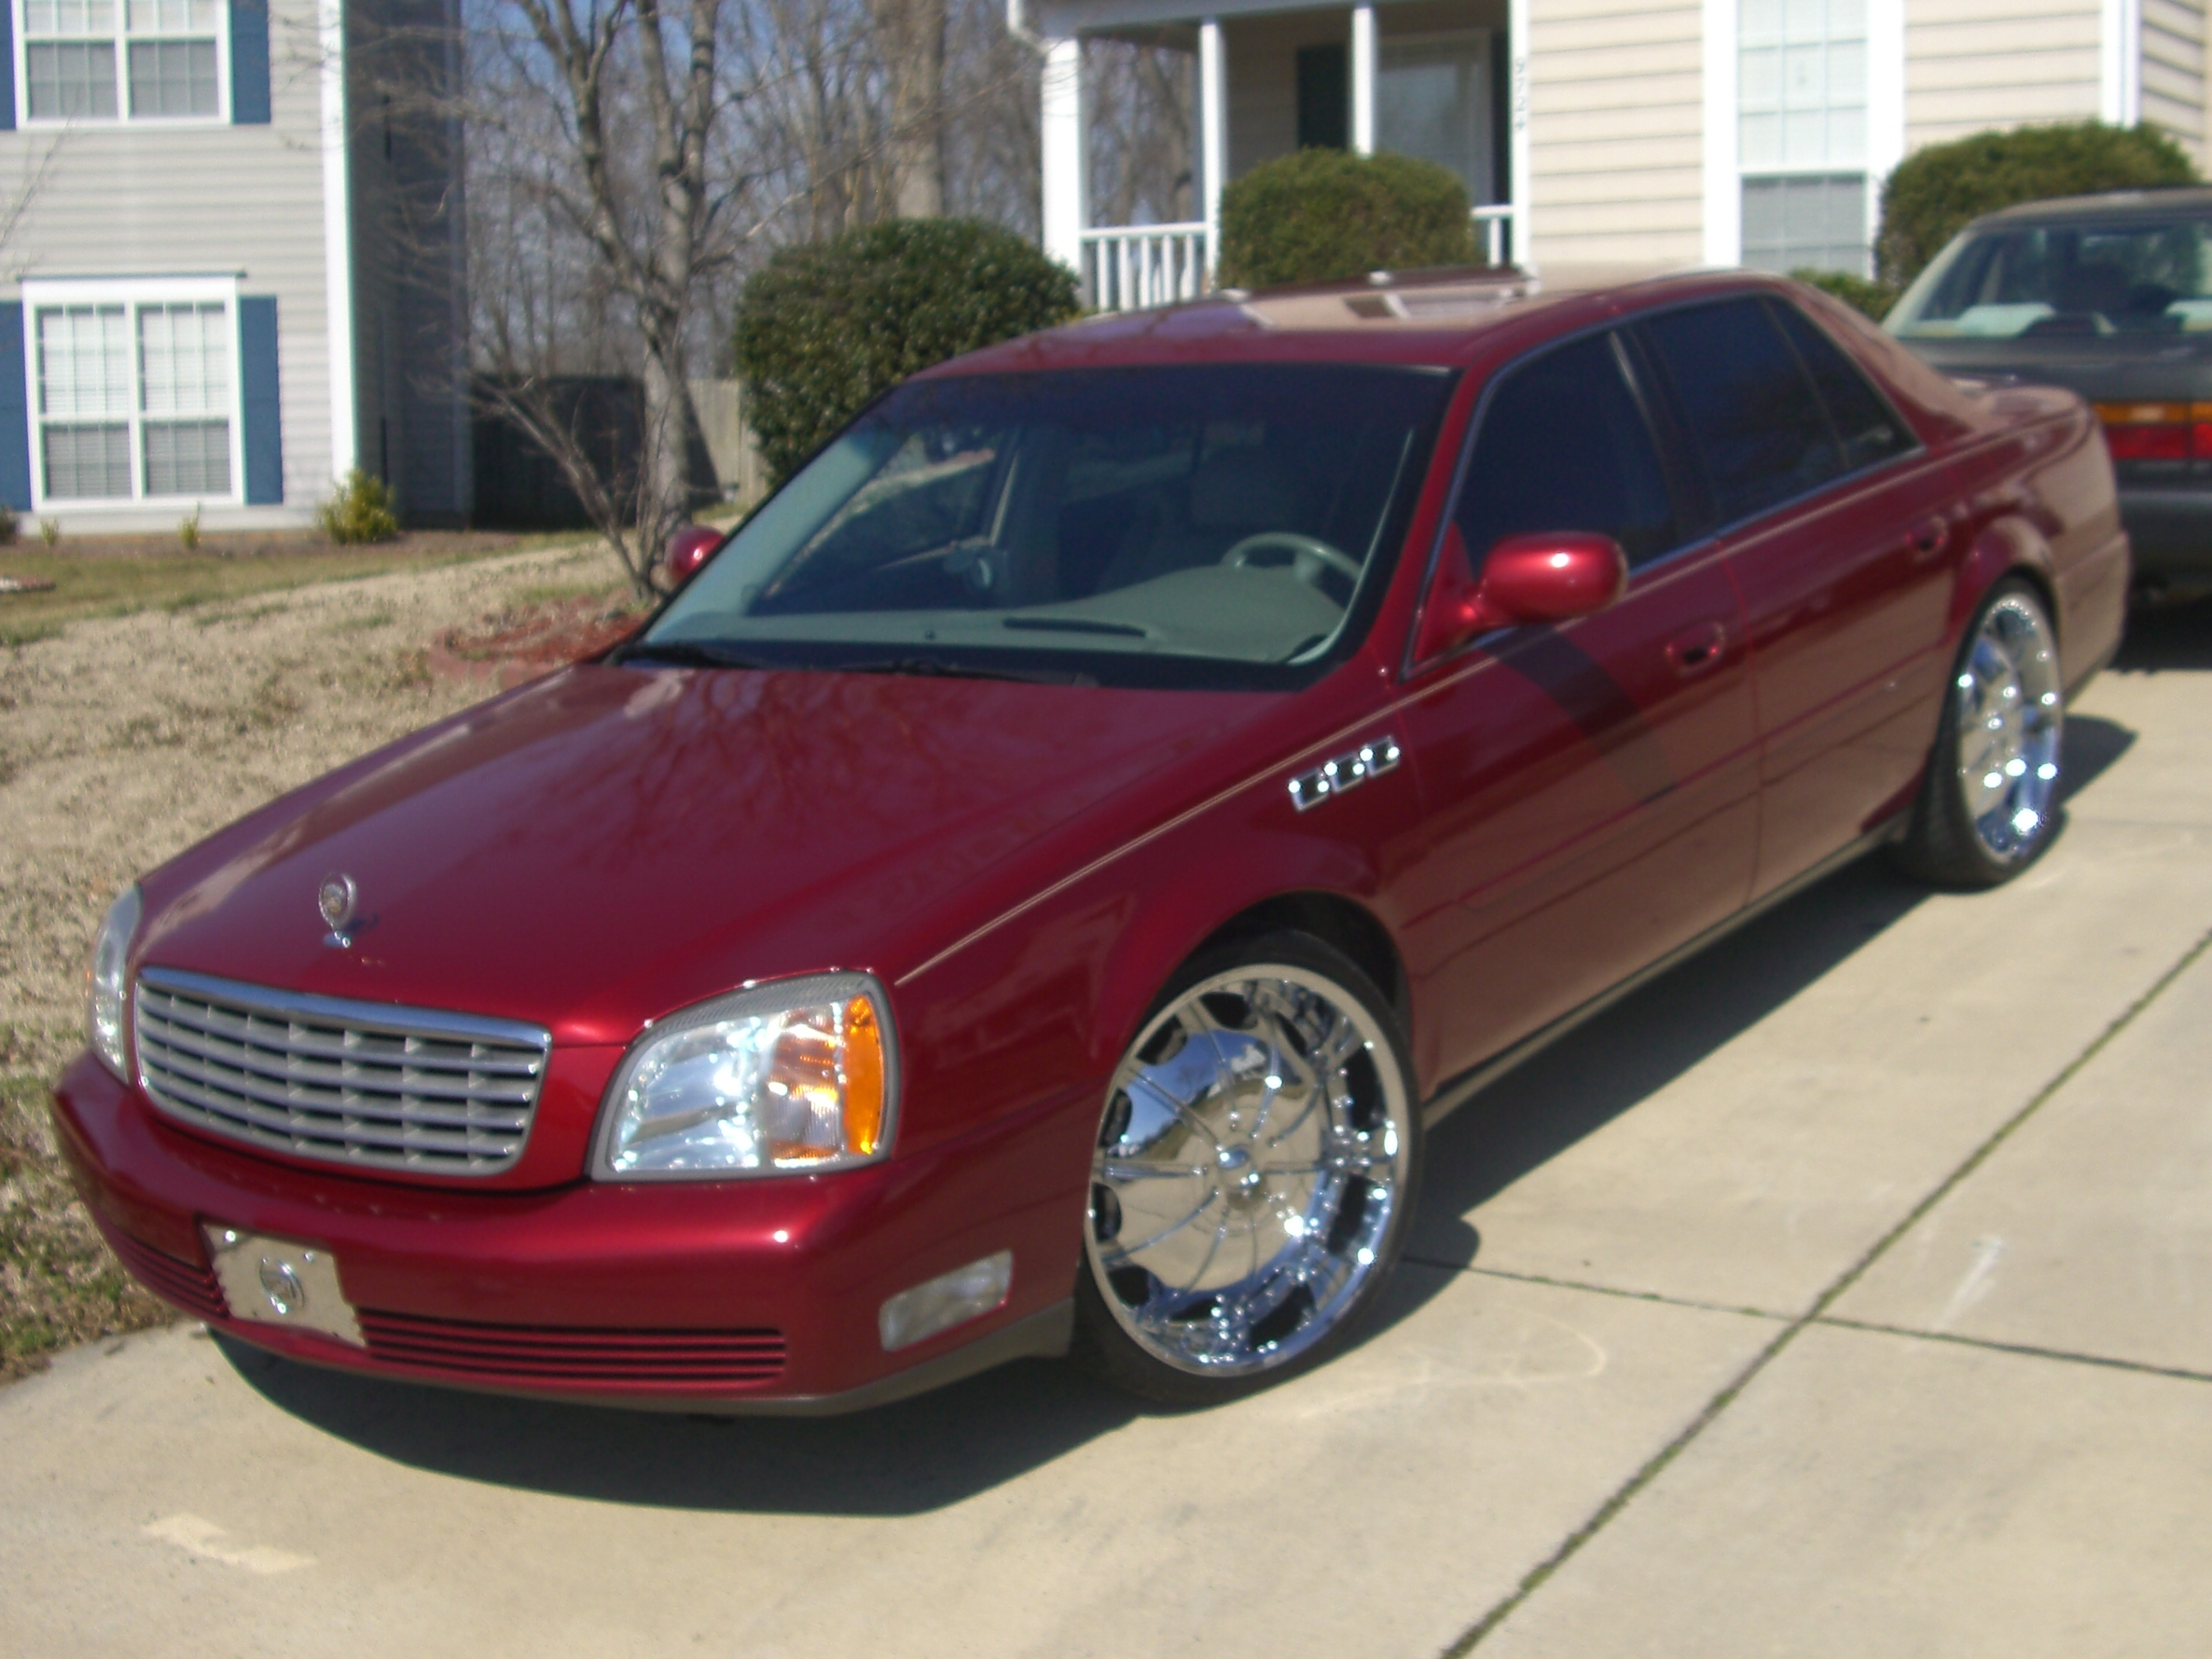 Bose Car Speakers >> ralinebe 2000 Cadillac DeVille Specs, Photos, Modification